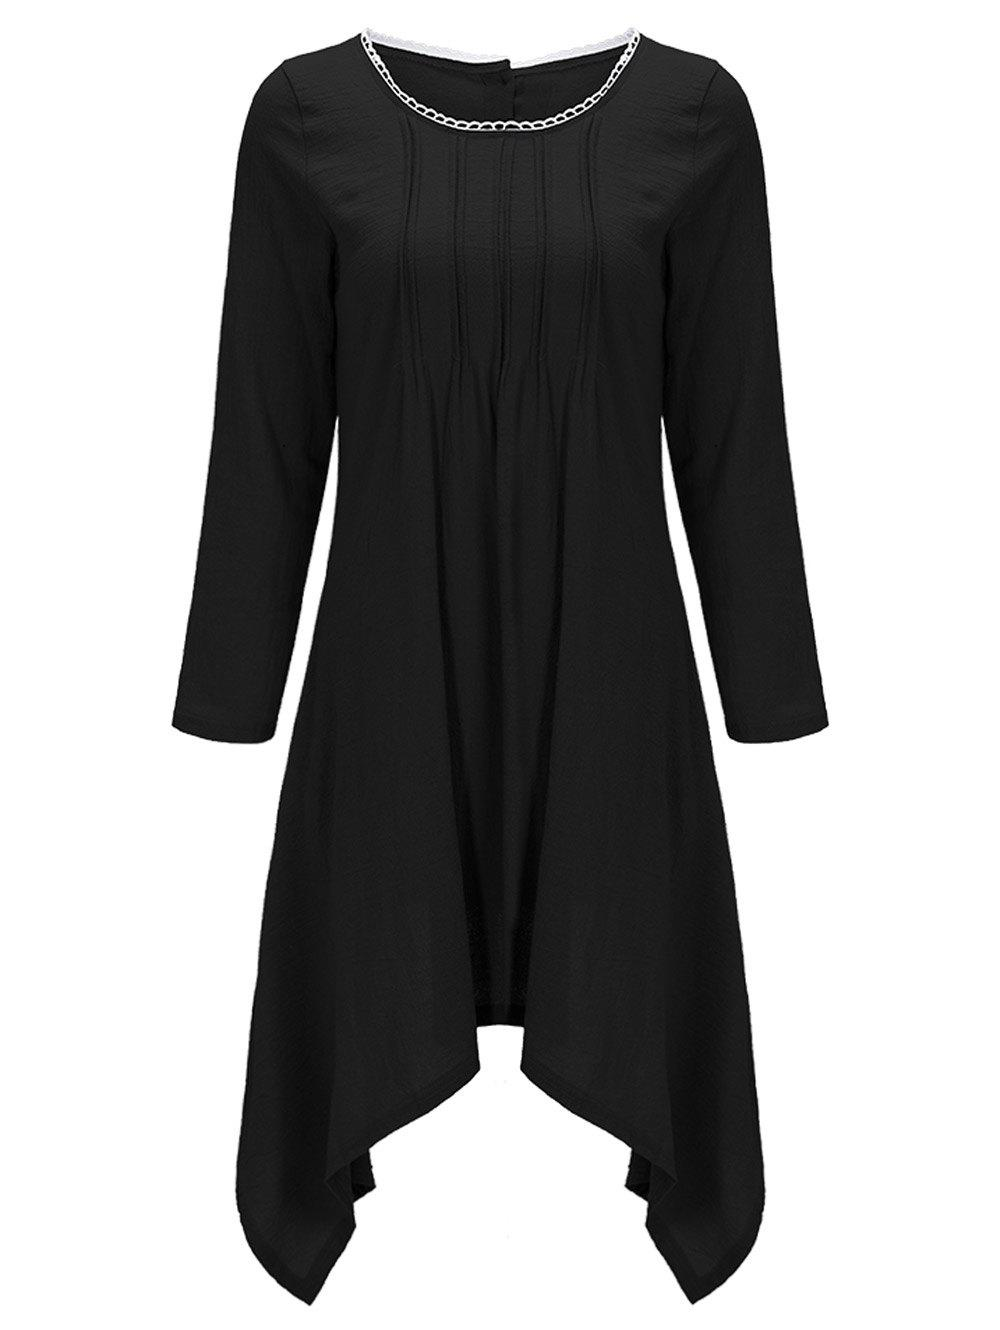 Asymmetrical Tunic Casual Long Sleeve Linen Dress - BLACK L